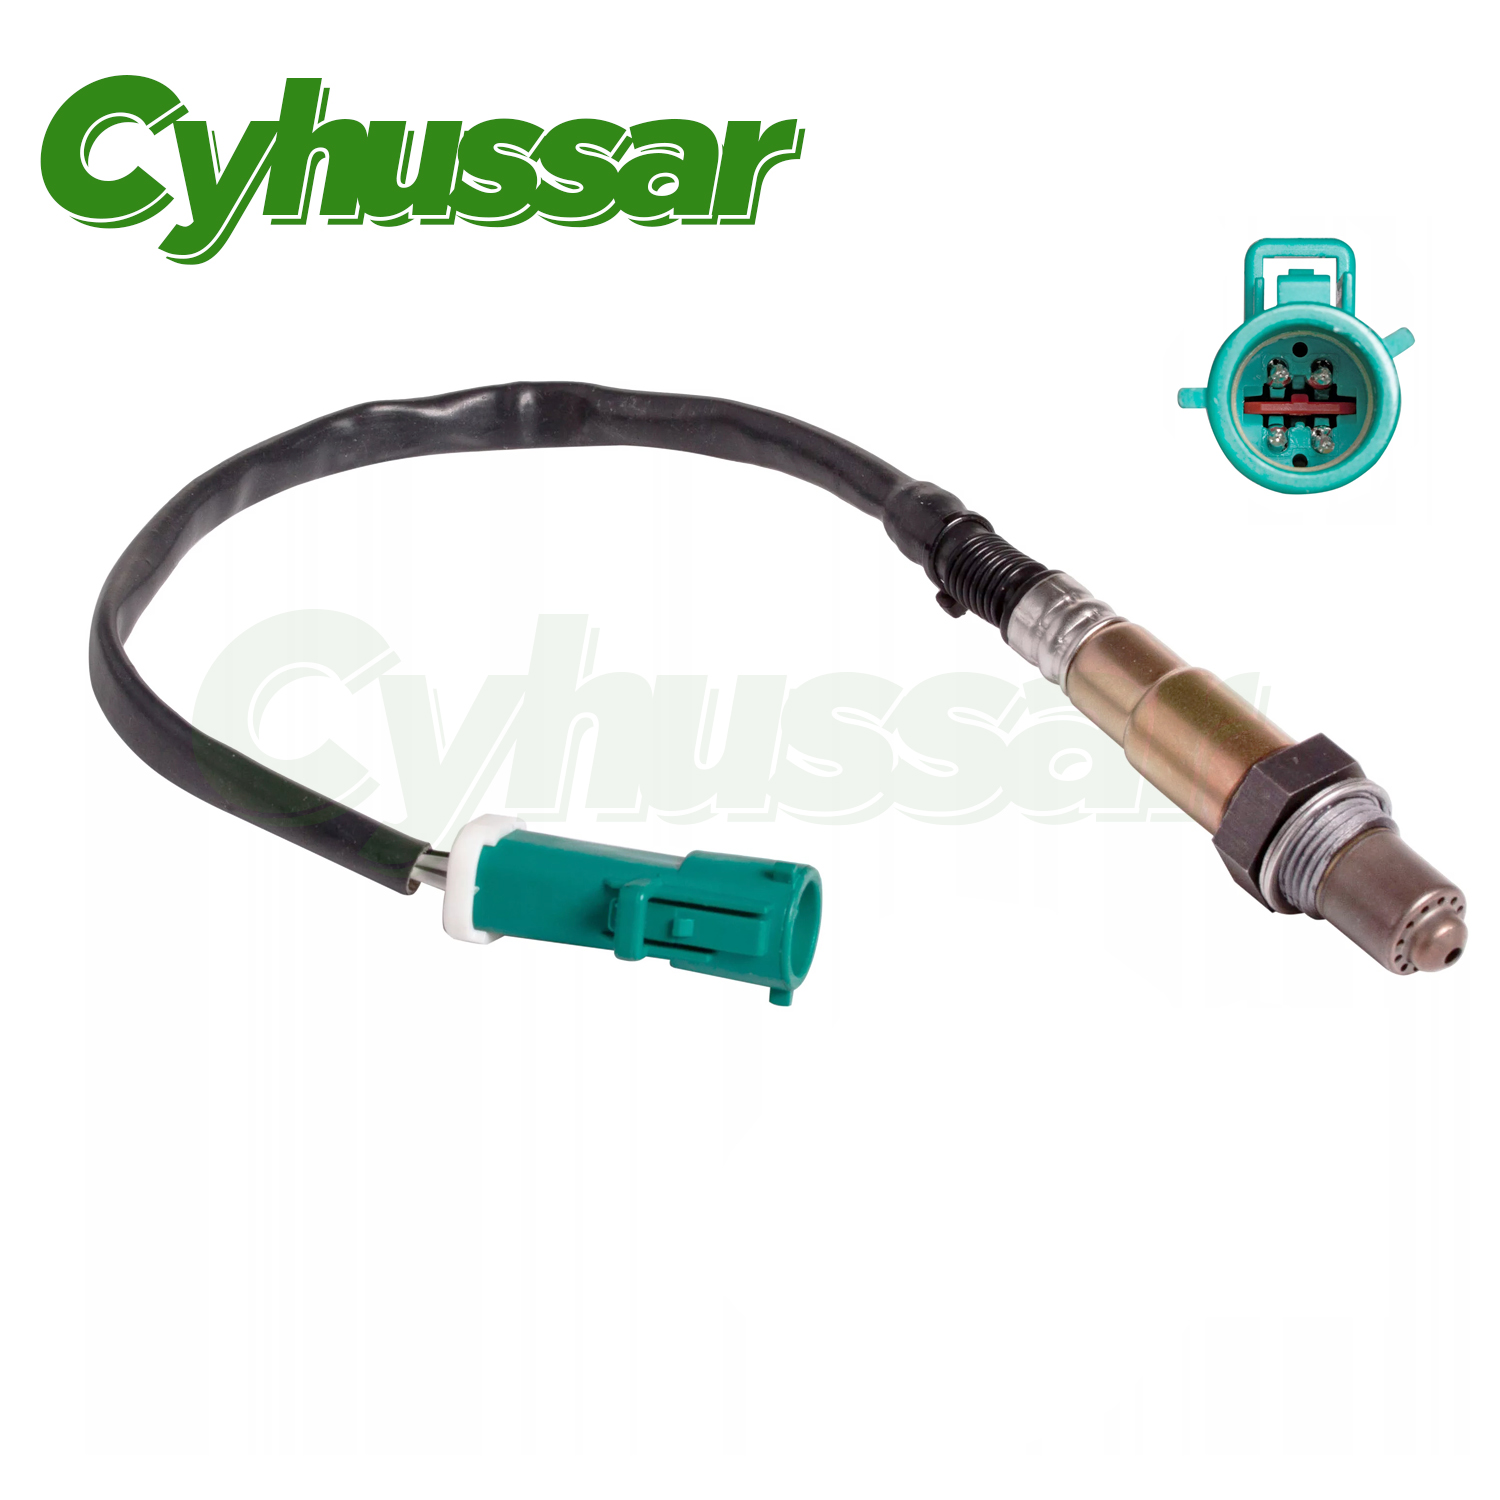 O2 Oxygen Sensor Fit For FORD GALAXY MONDEO S-MAX VOLVO S60 S80 V60 V70 XC60 1376444 0258006925 4 Wire Upstream Front LambdaO2 Oxygen Sensor Fit For FORD GALAXY MONDEO S-MAX VOLVO S60 S80 V60 V70 XC60 1376444 0258006925 4 Wire Upstream Front Lambda